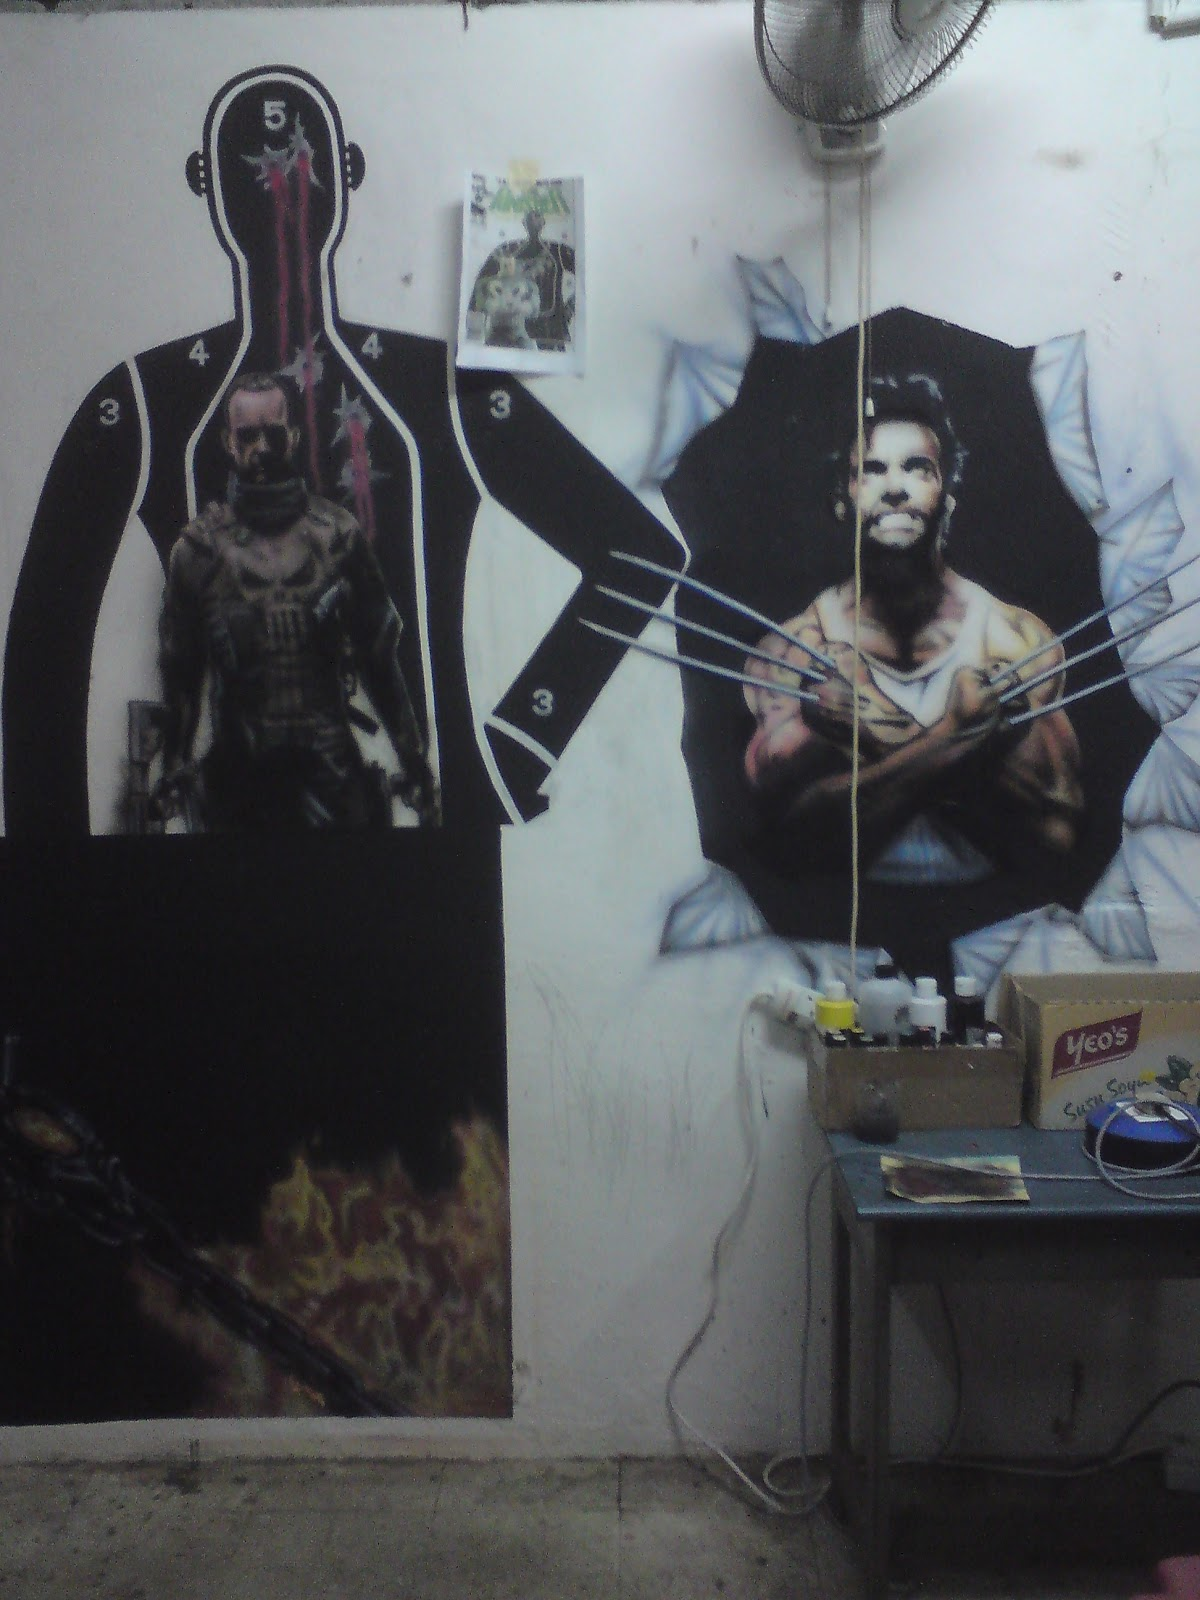 tribe x airbrush and custom artz new artwork for 2012 punisher meets wolverine wall mural older airbrush work bikes scooters